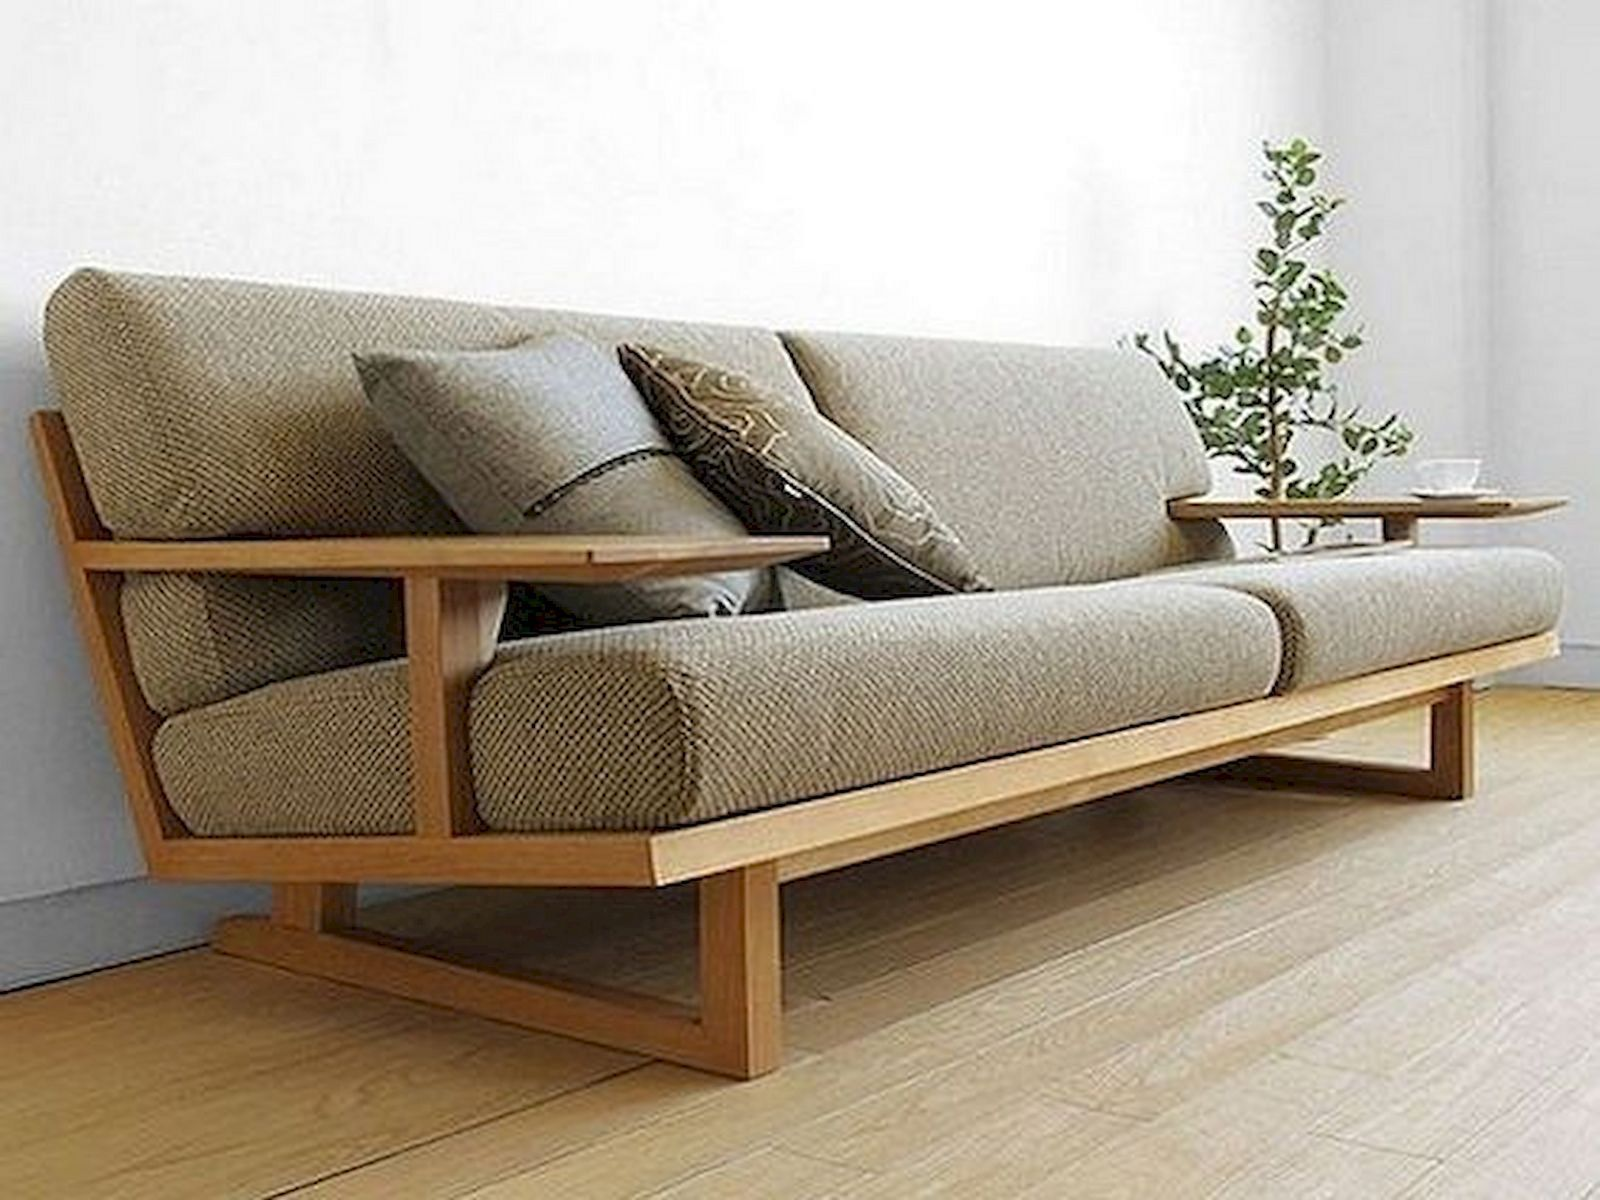 15 Wooden Sofa Ideas To Beautify Your Living Room Furniture